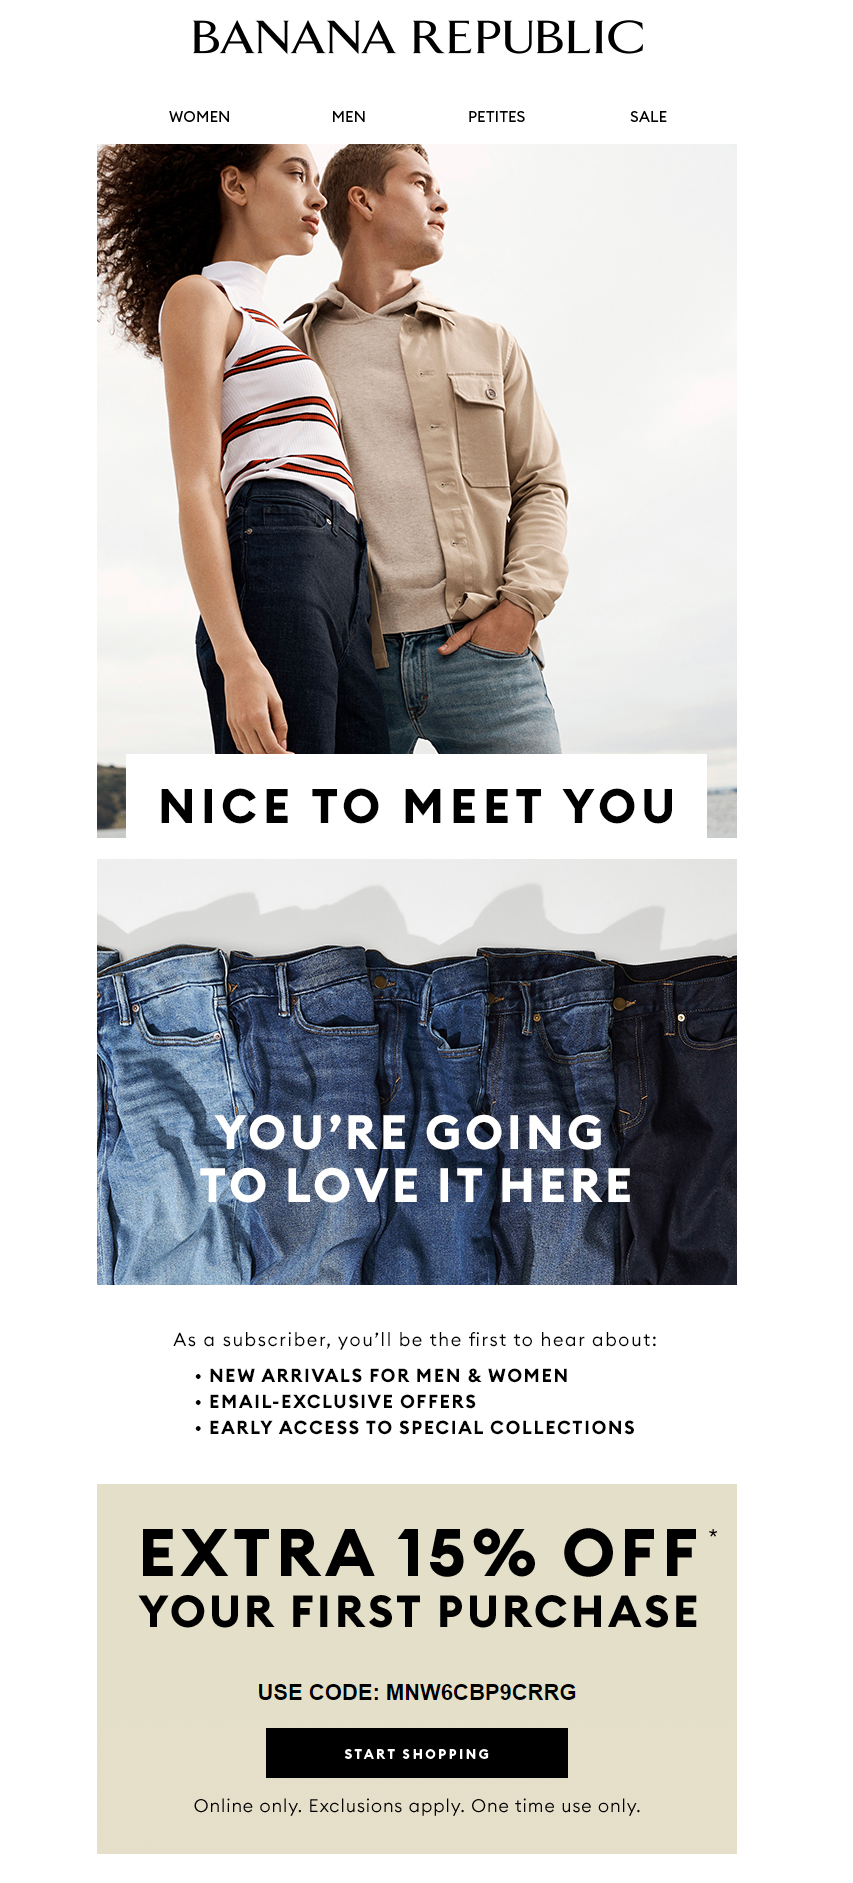 An example from Banana Republic of a welcome email they send out.